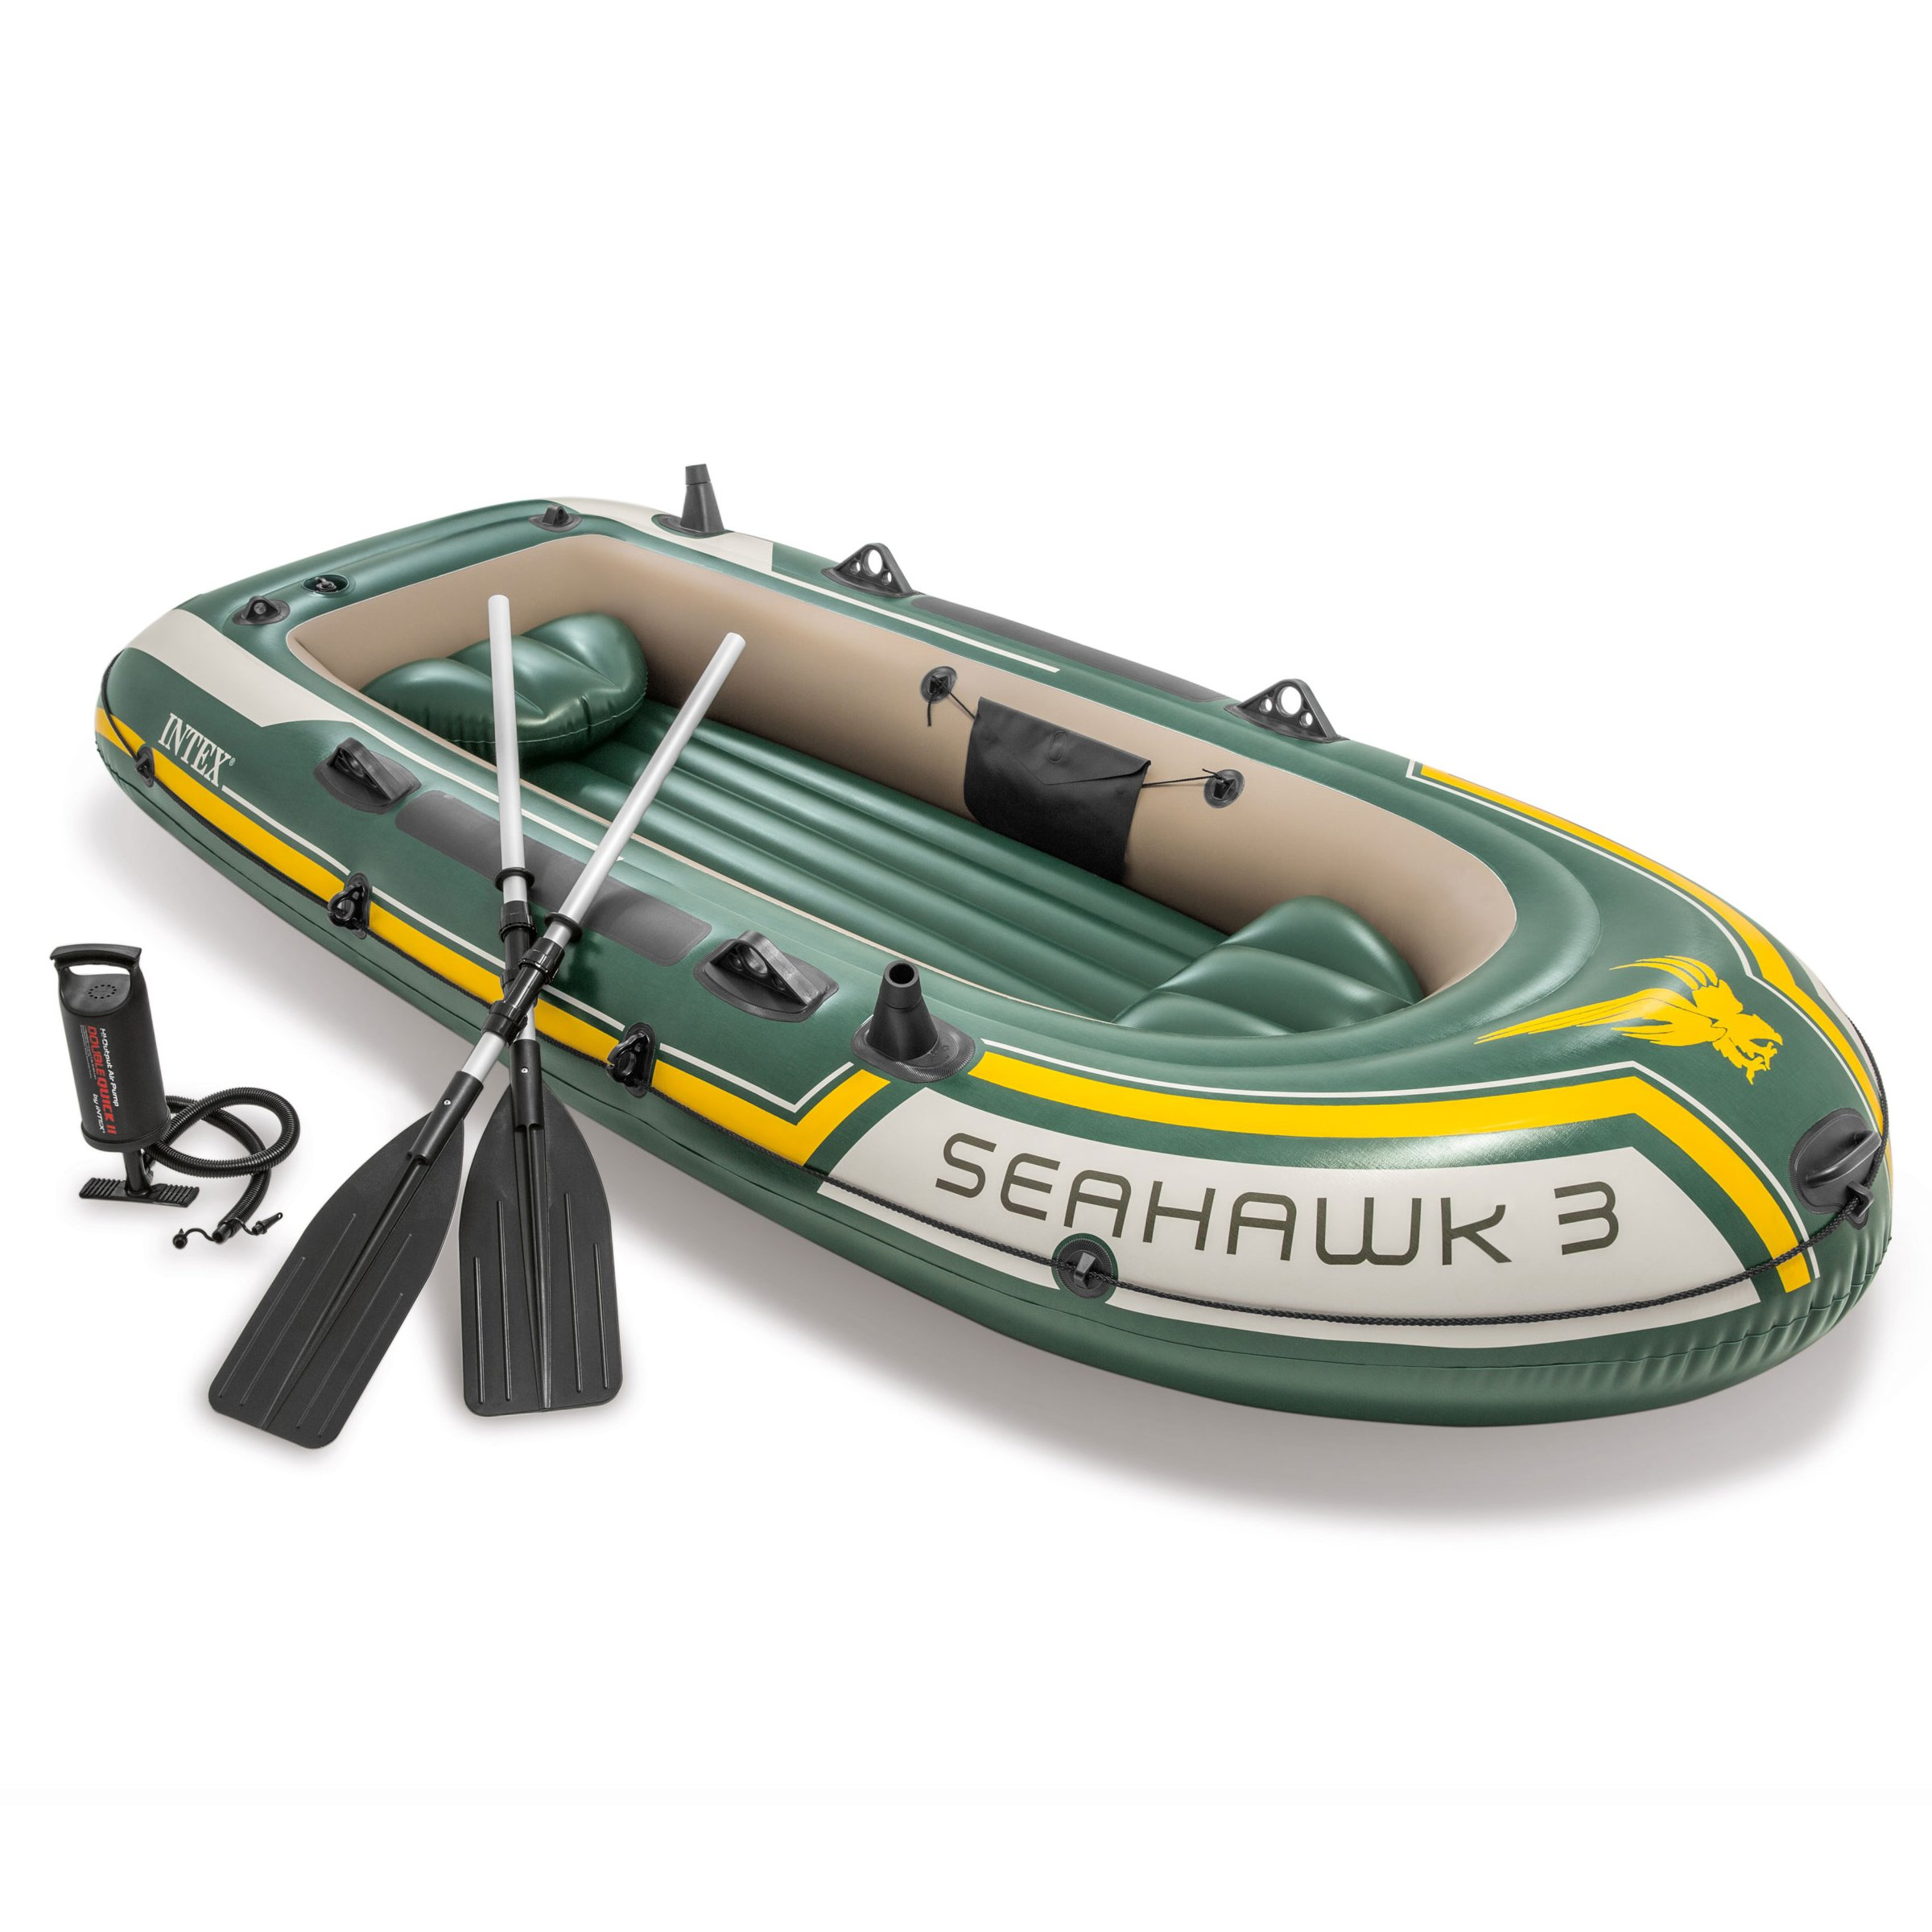 Intex Seahawk 3, 3-Person Inflatable Boat Set with Aluminum Oars and High Output Air Pump (Latest Model) by Intex